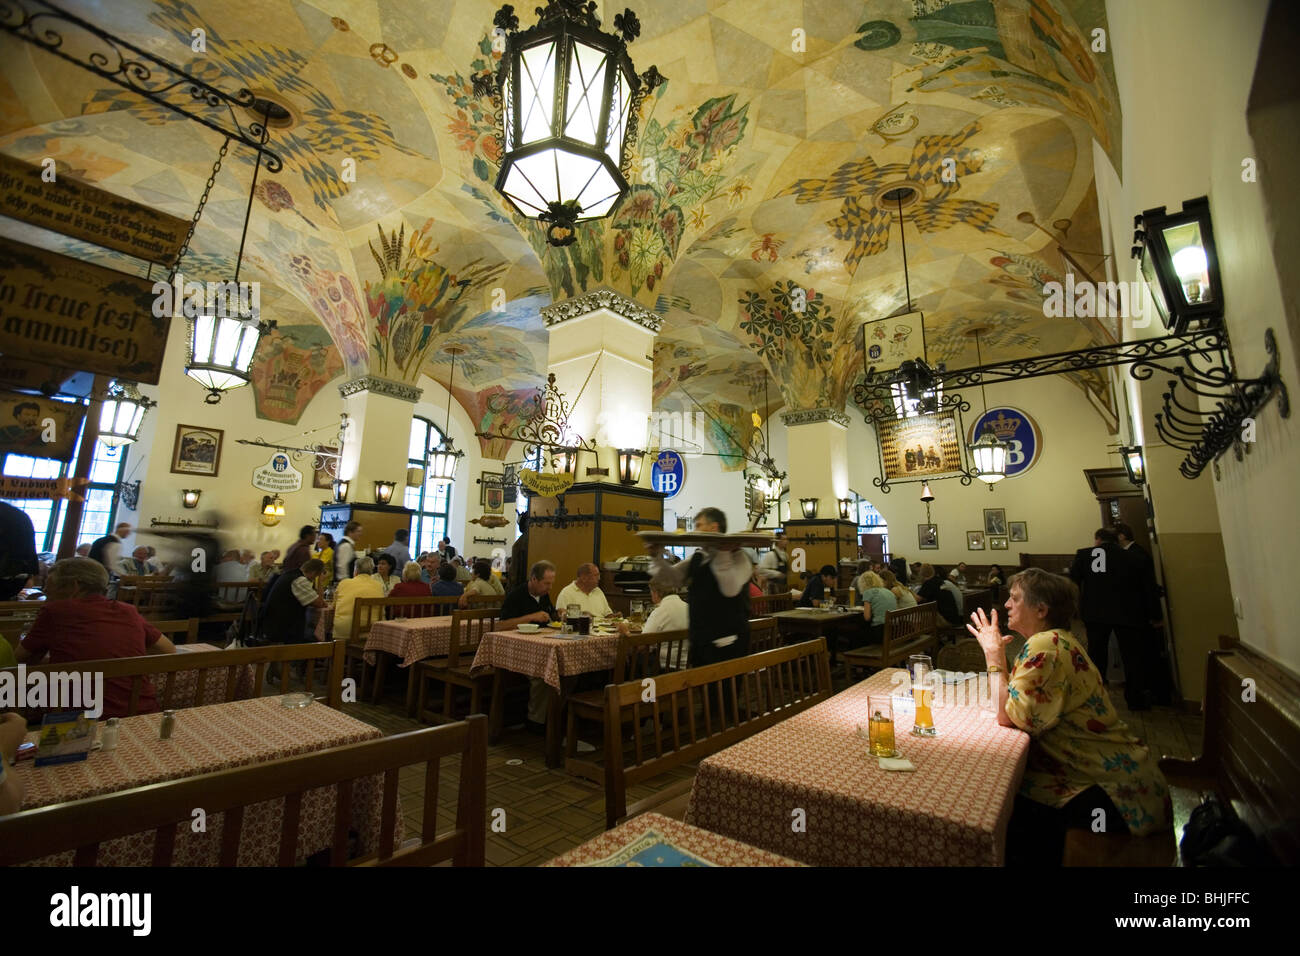 A woman at her table looking a the elaborated ceiling at the Hofbrauhaus am Platzl. Munich, Germany - Stock Image